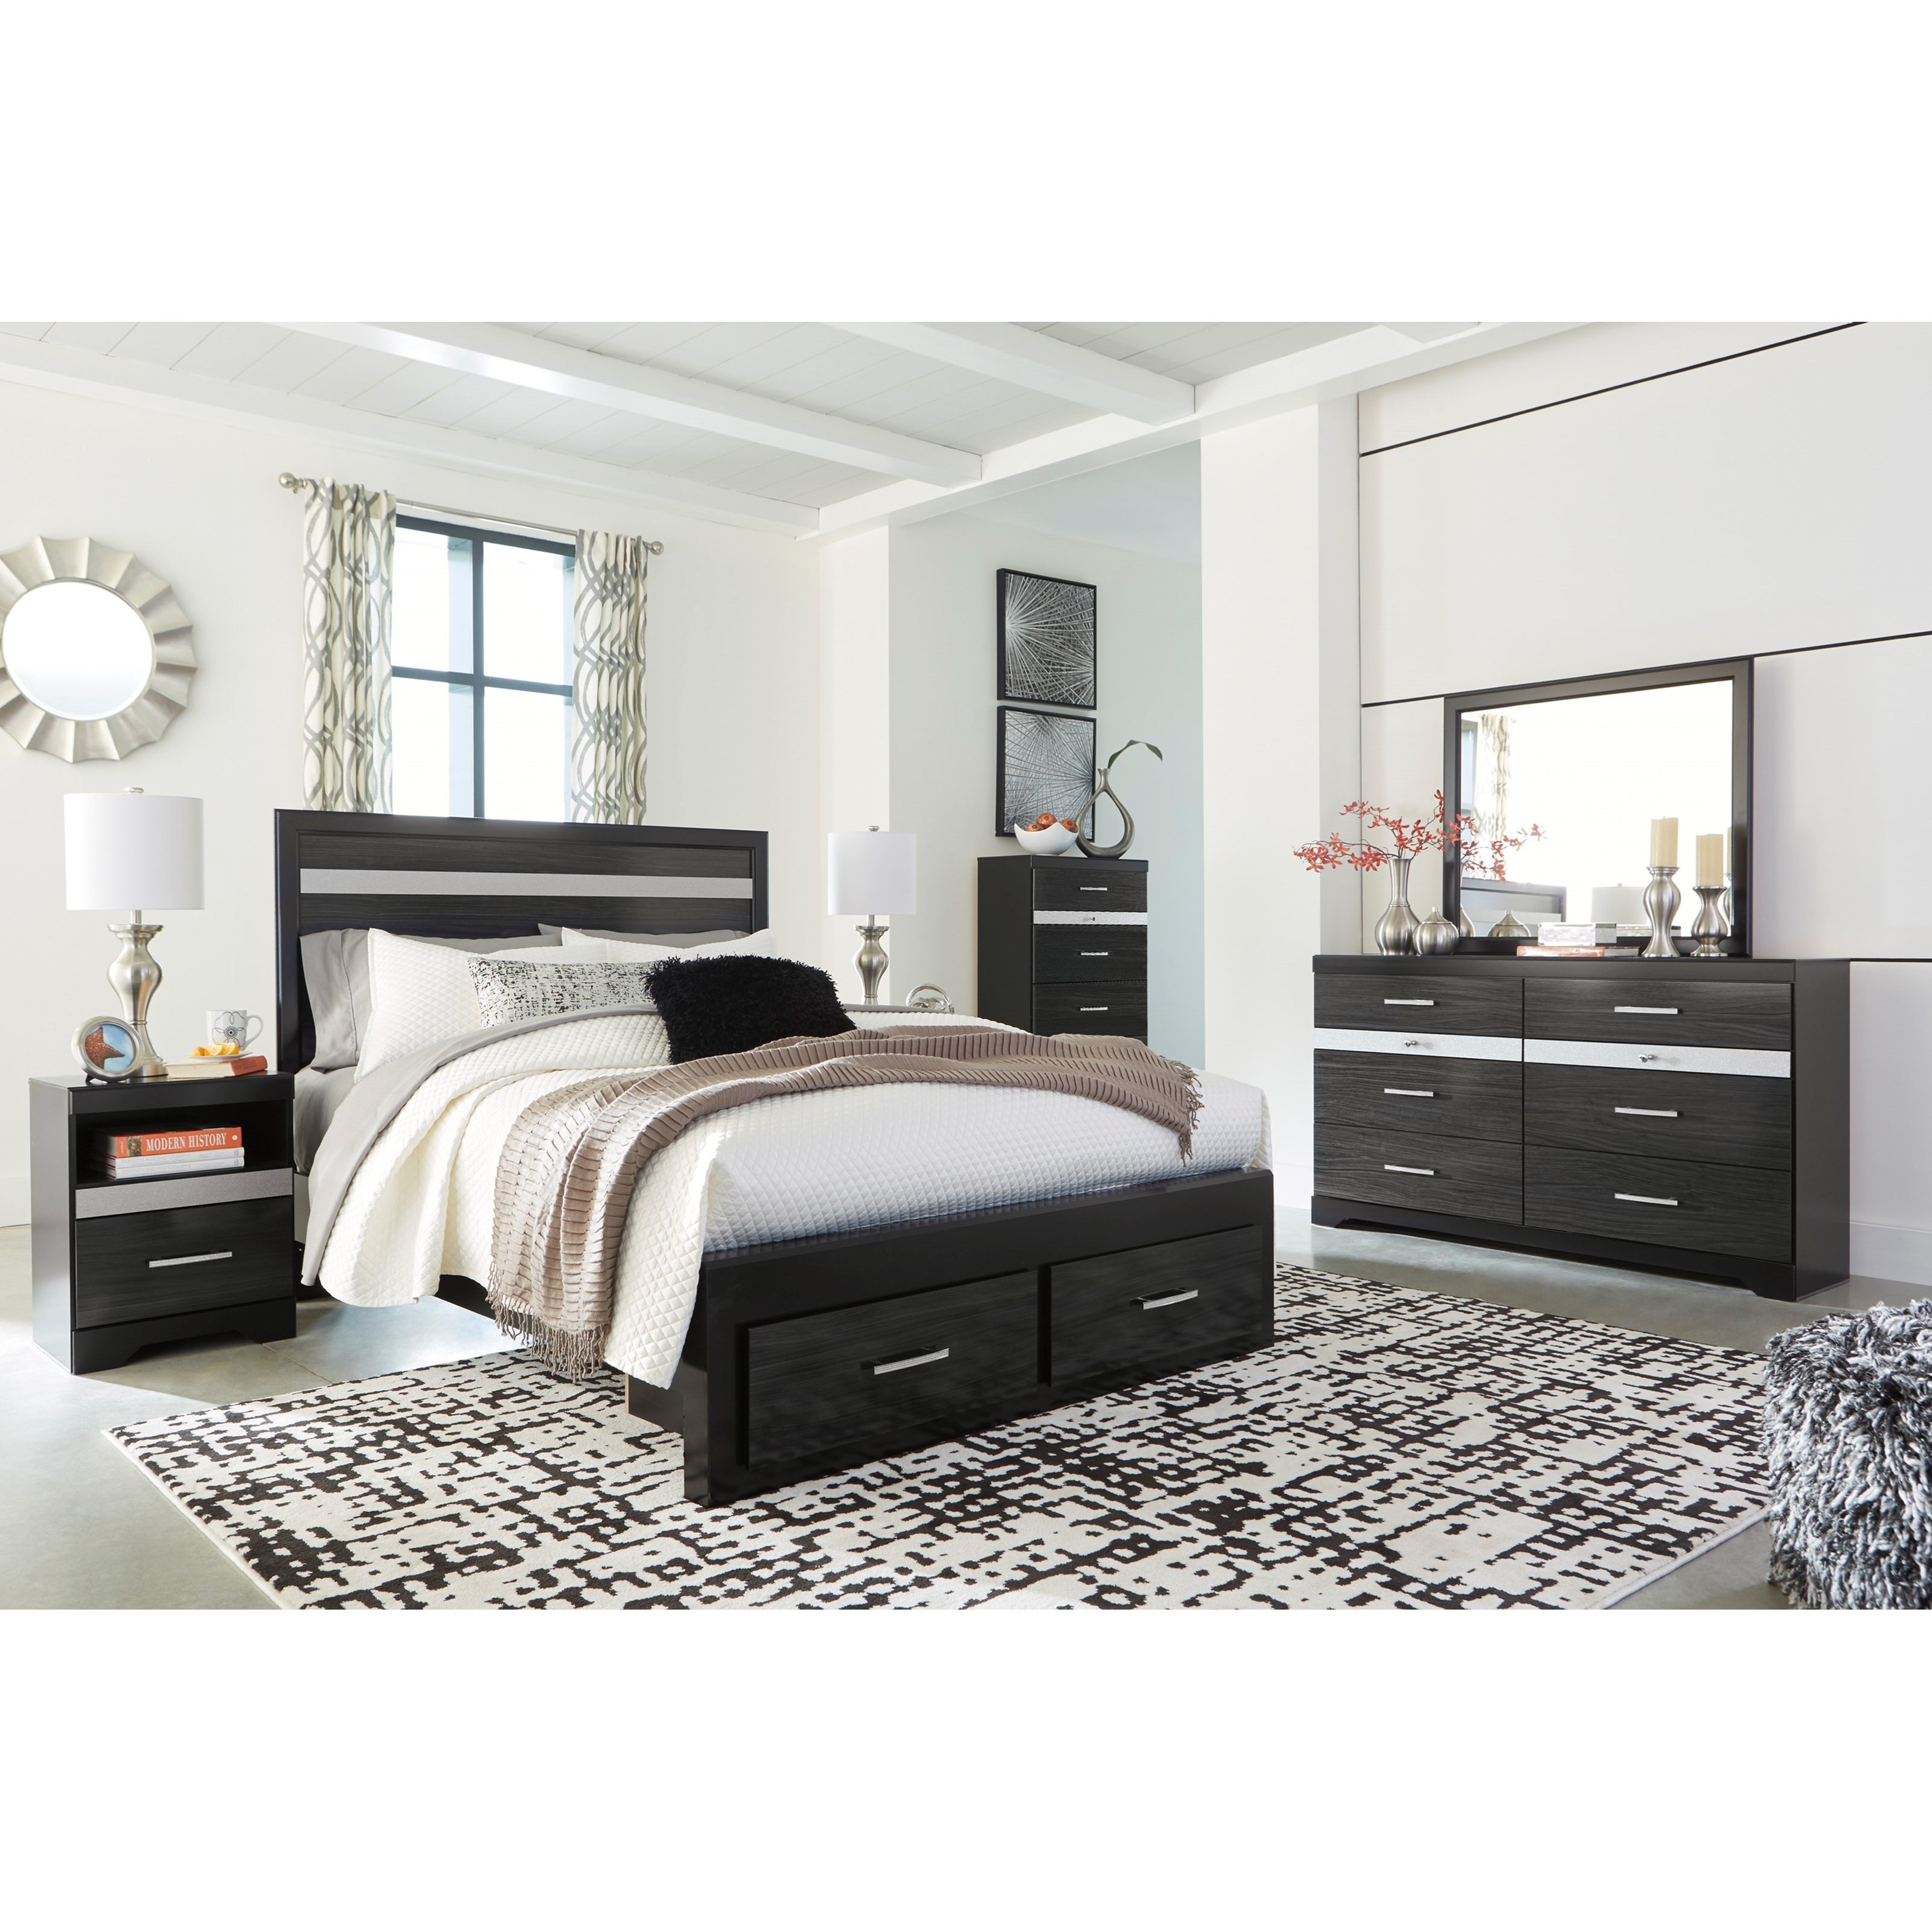 Ashley Furniture Superstore: Signature Design By Ashley Starberry Queen Bedroom Group